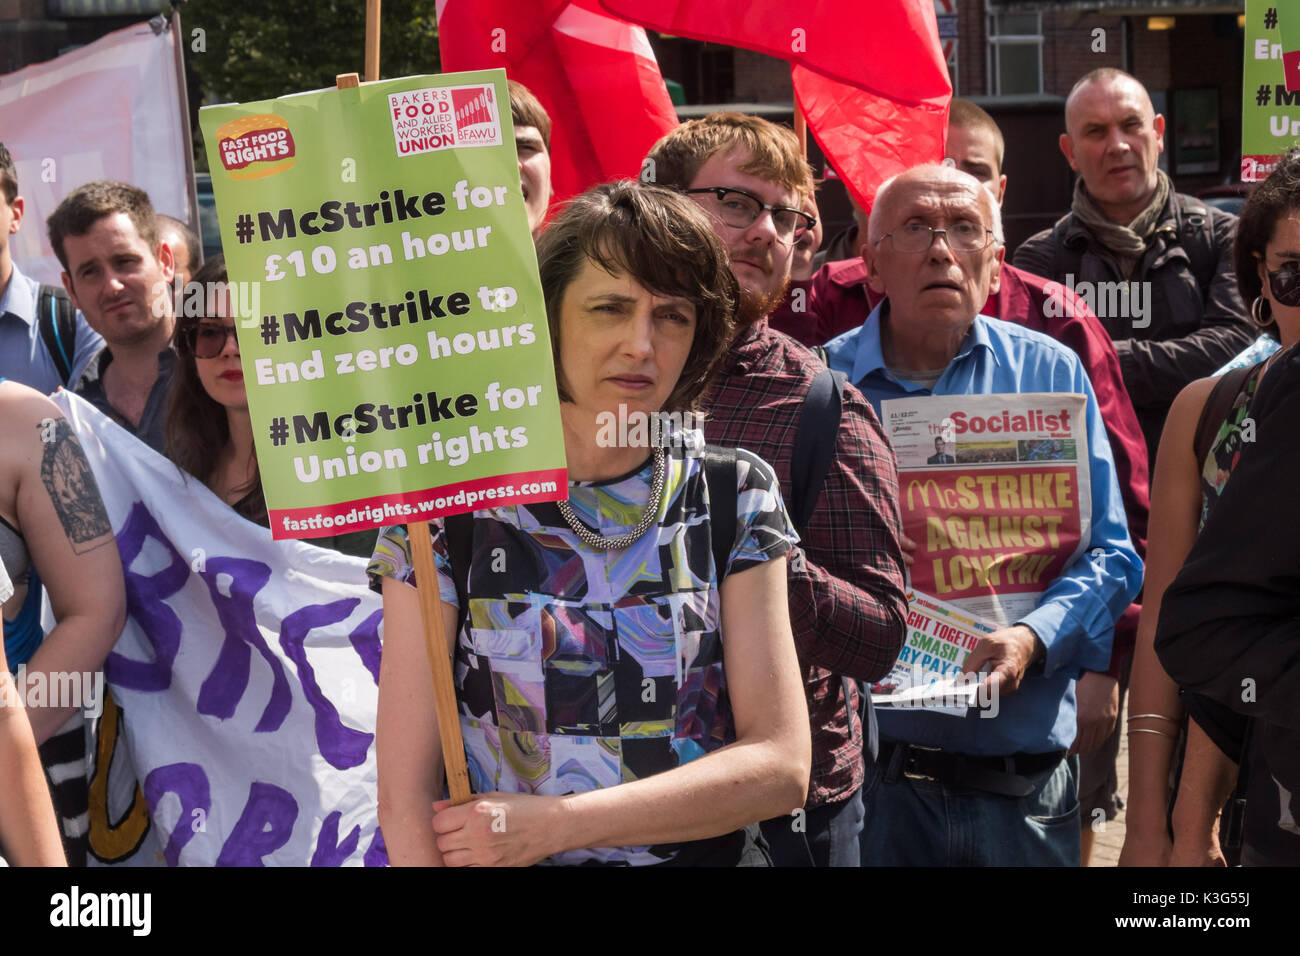 London, UK. 2nd September 2017. Supporters at the rally by McDonald's workers who are holding the first UK strike against the company on Monday, US Labor Day. They demand an end to zero hours contracts, £10 an hour and union recognition. Bakers, Food and Allied Workers Union (BFAWU) President Ian Hodson led the rally at which organisers from the New Zealand Unite union as well as strikers and other supporters spoke in solidarity. Credit: Peter Marshall/Alamy Live News - Stock Image